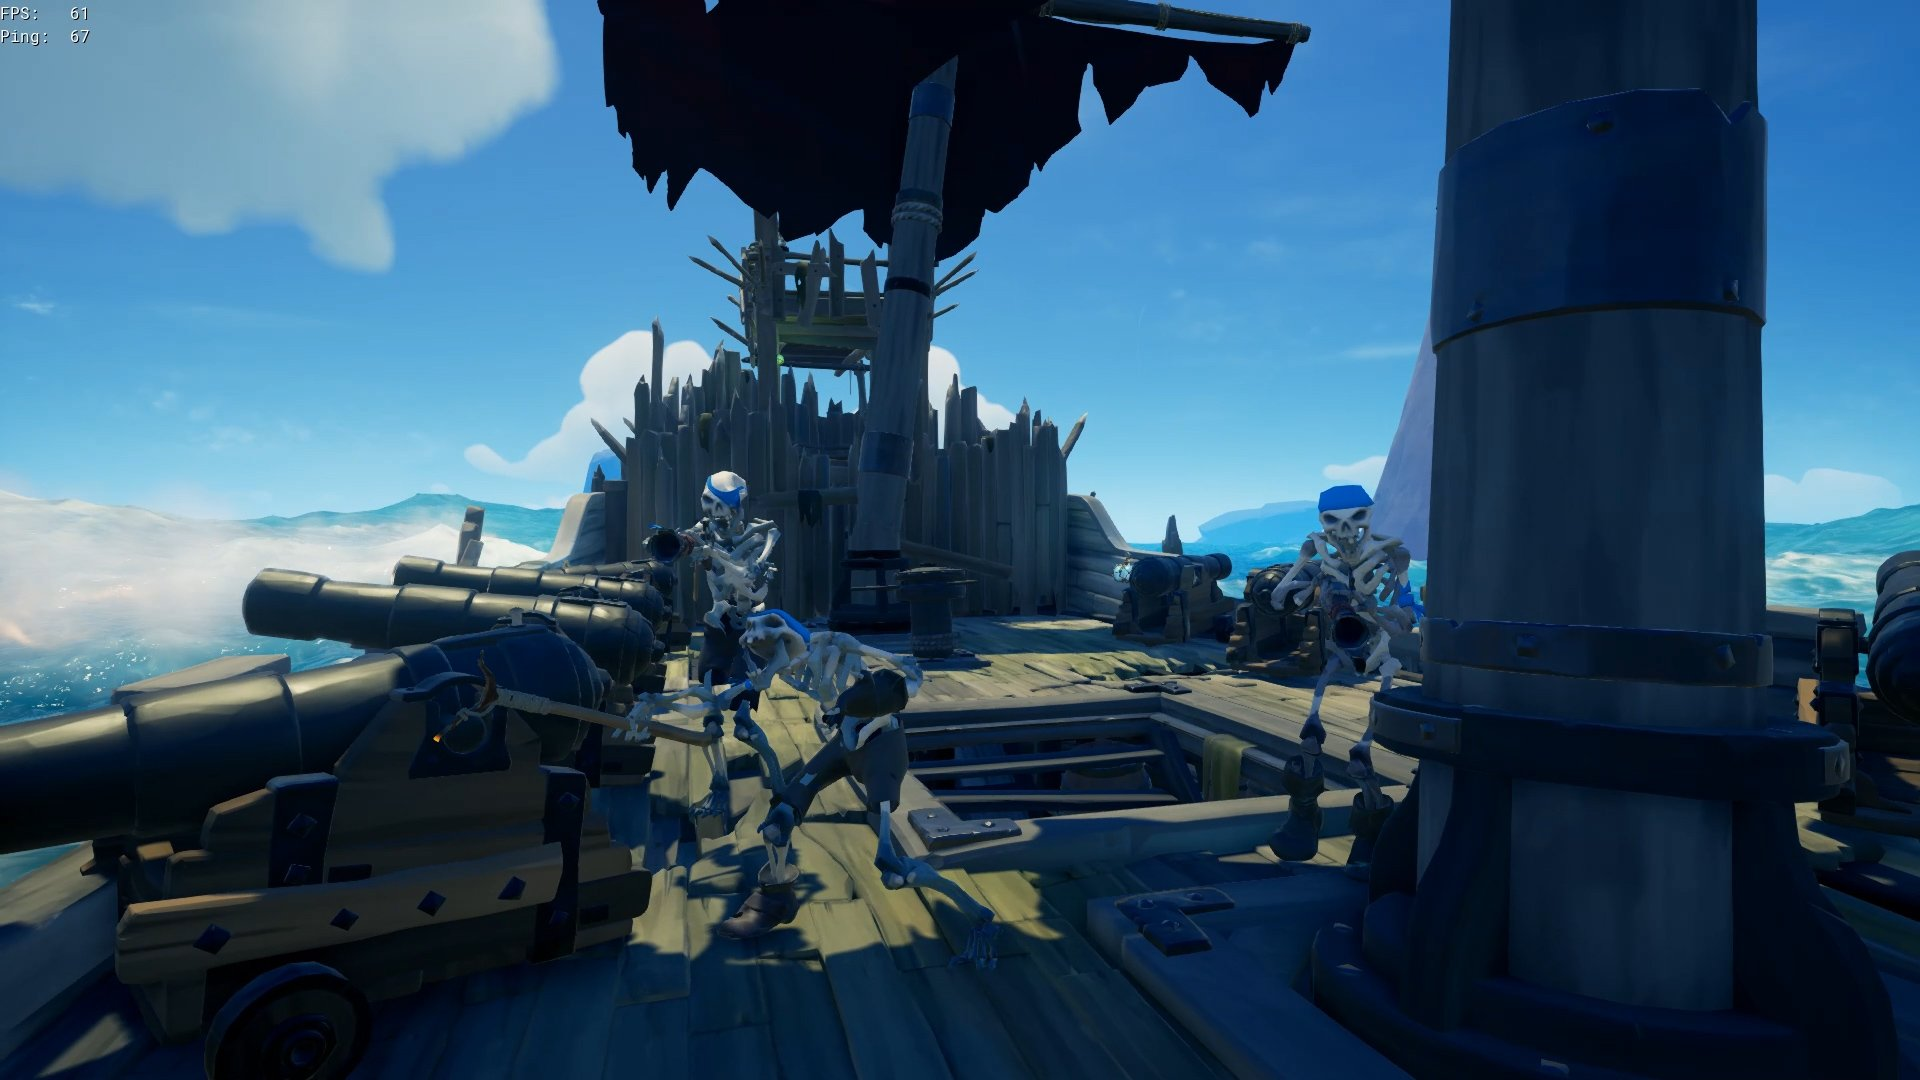 https://d1lss44hh2trtw.cloudfront.net/assets/editorial/2018/08/skeleton-ship-cannons-sea-of-thieves.jpg